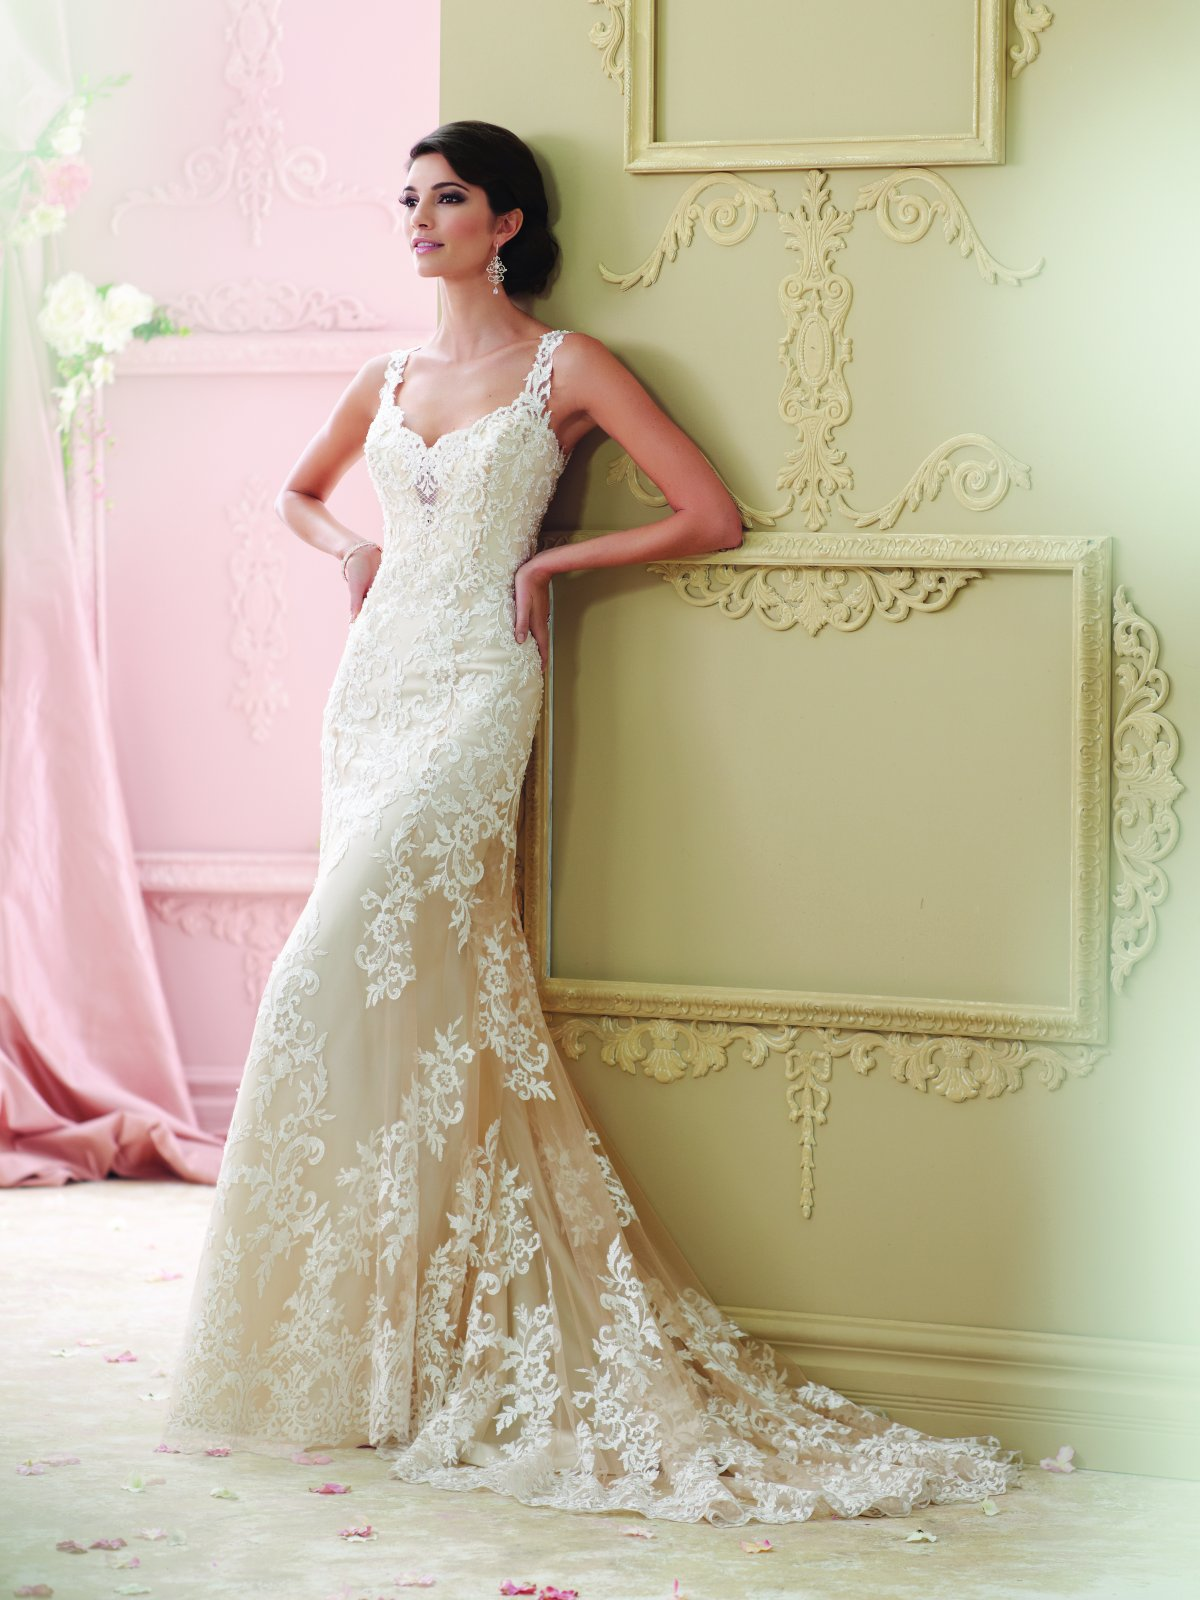 Classic A-Line Gown with Embroidered Lace Over Satin